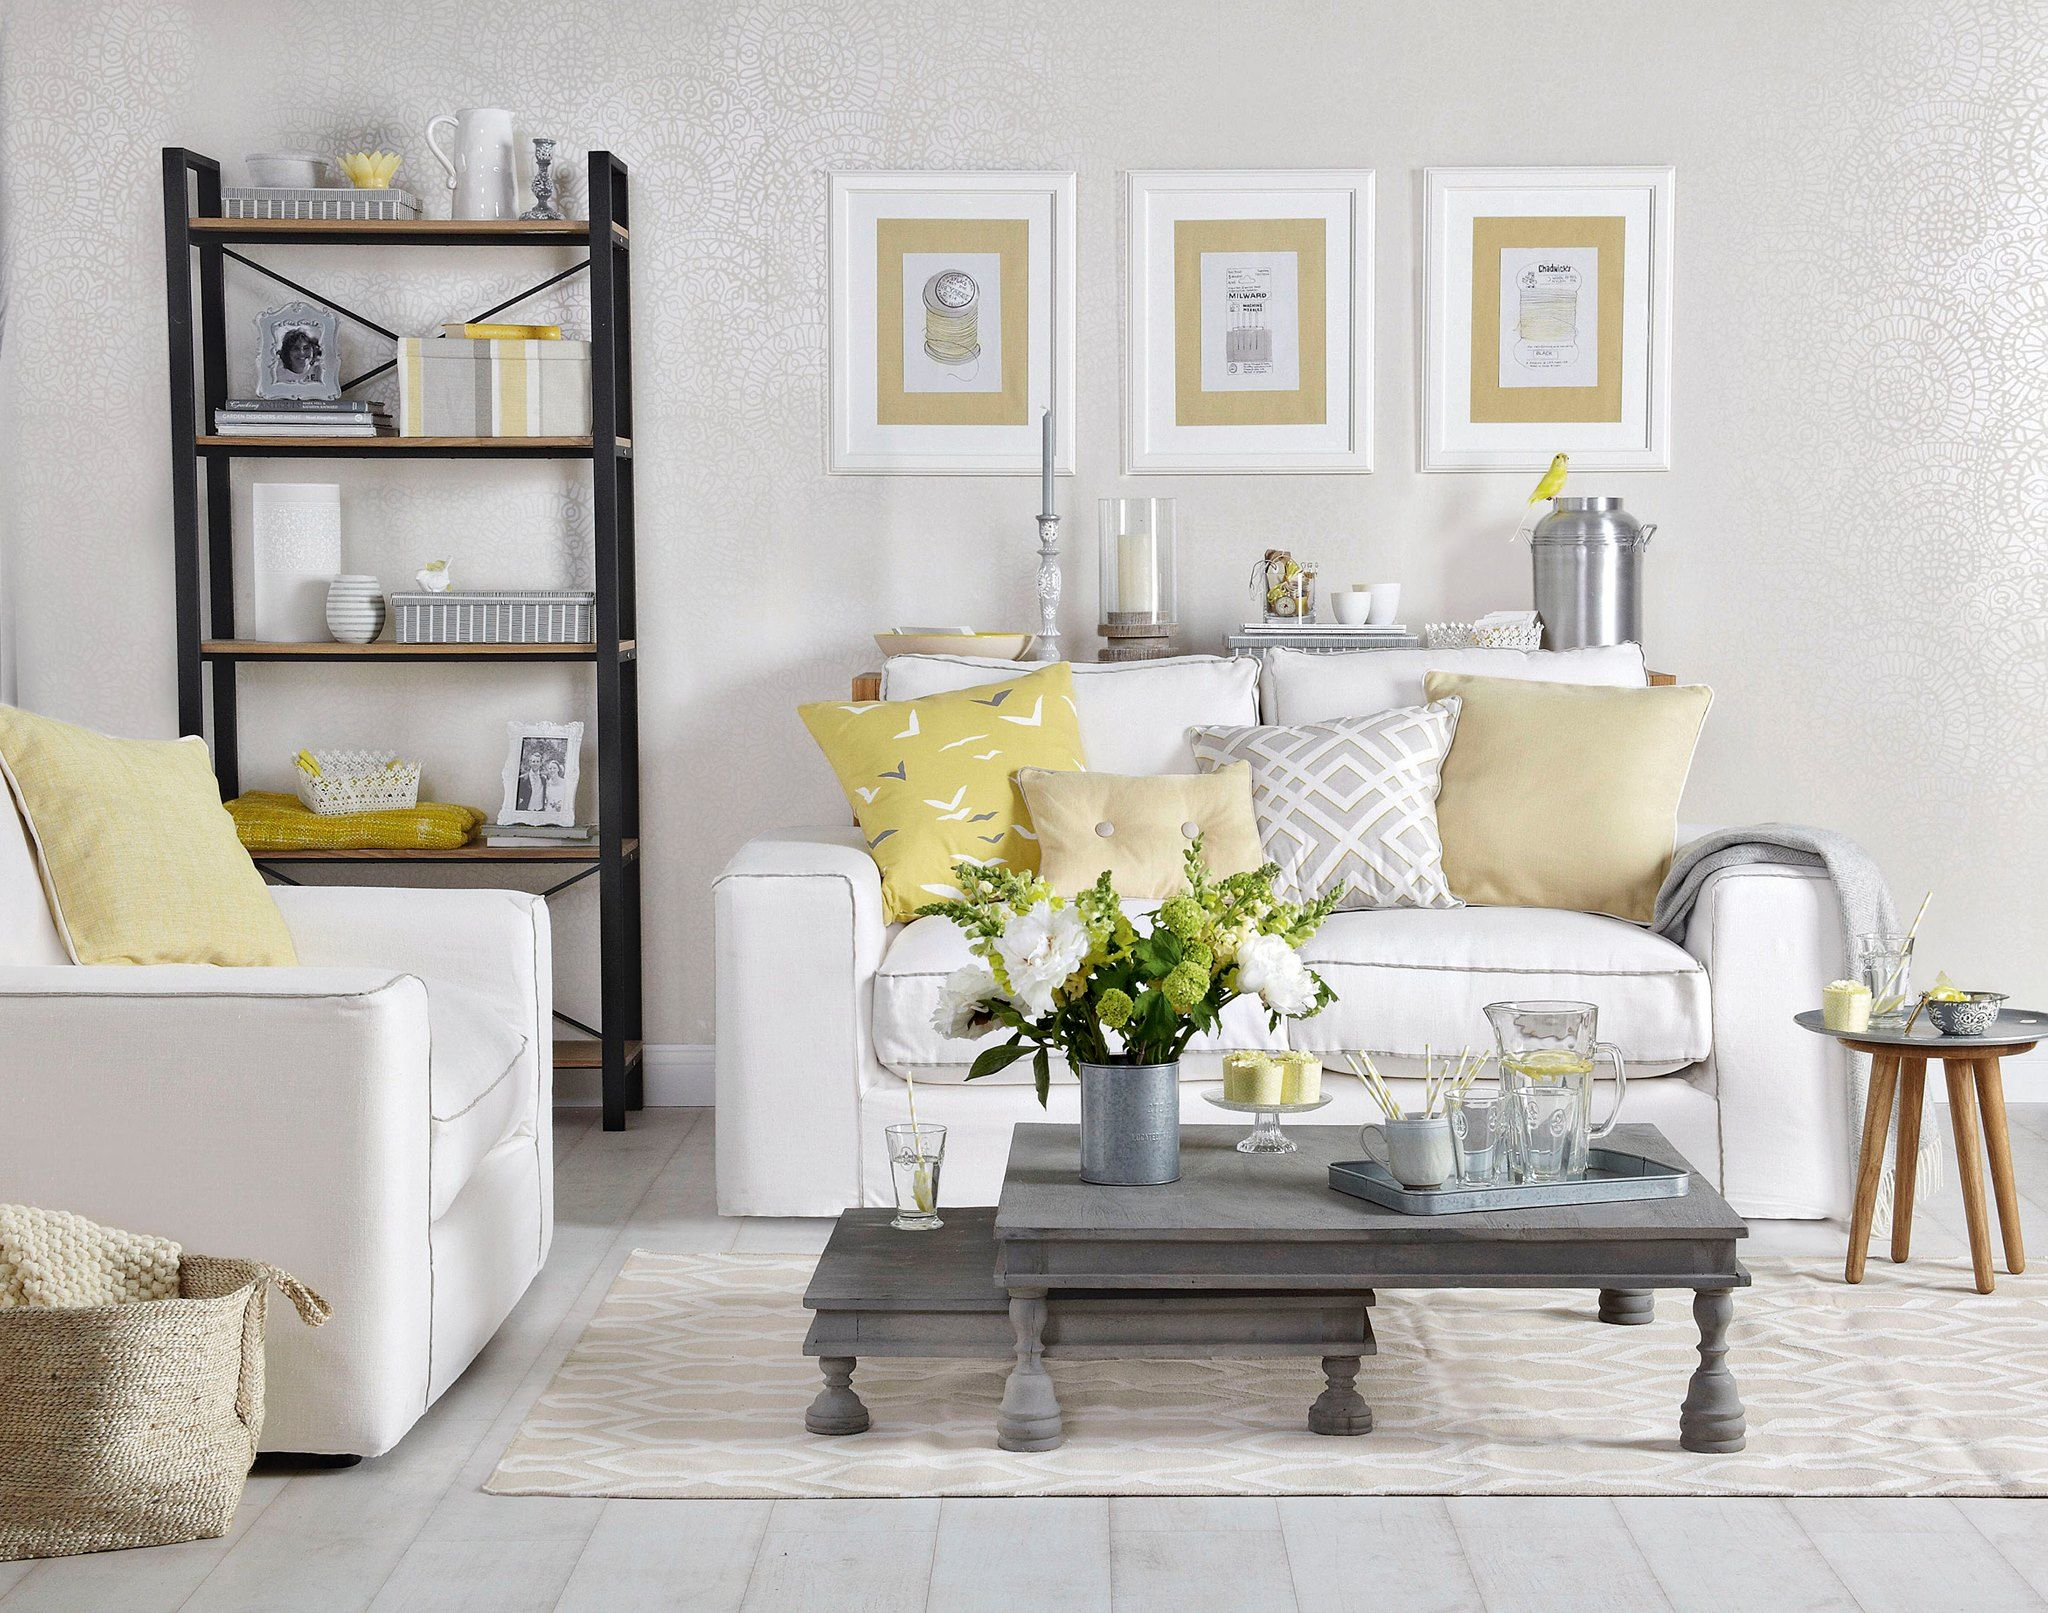 Best Grey Living Room With Lemon Yellows Decor Going Grey 640 x 480